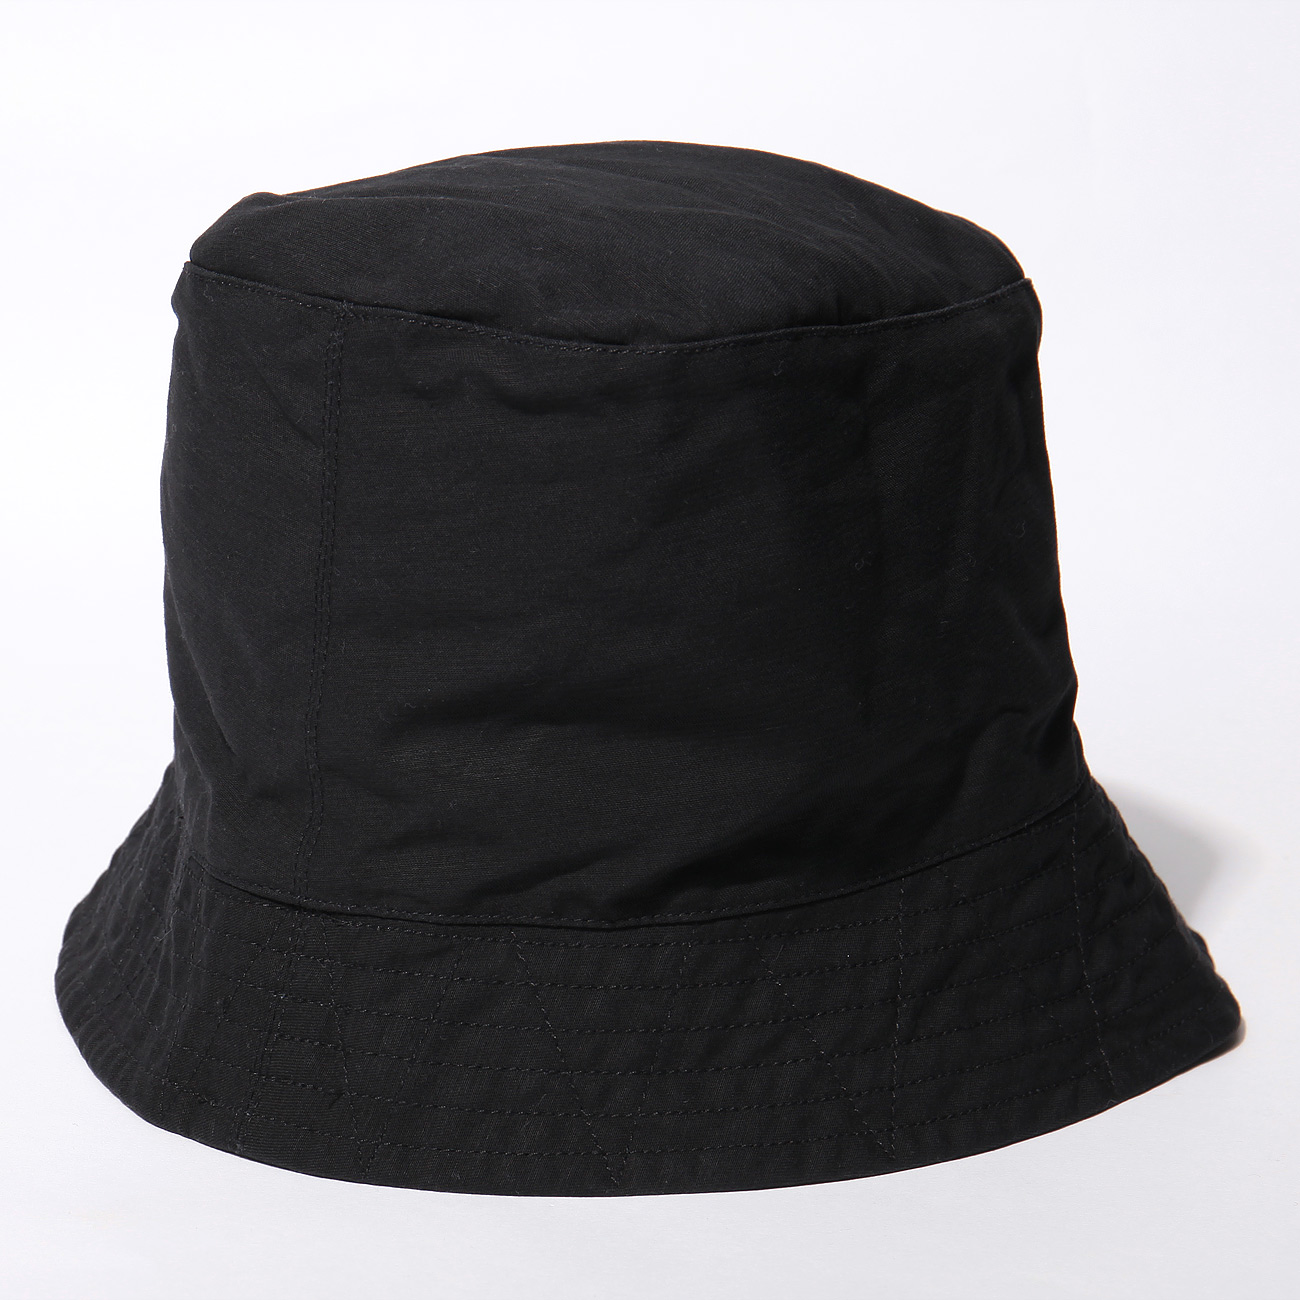 da99383f9f4 HOME   ENGINEERED GARMENTS   キャップ・ハット   Bucket Hat - Cotton Double Cloth -  Black. Previous Next